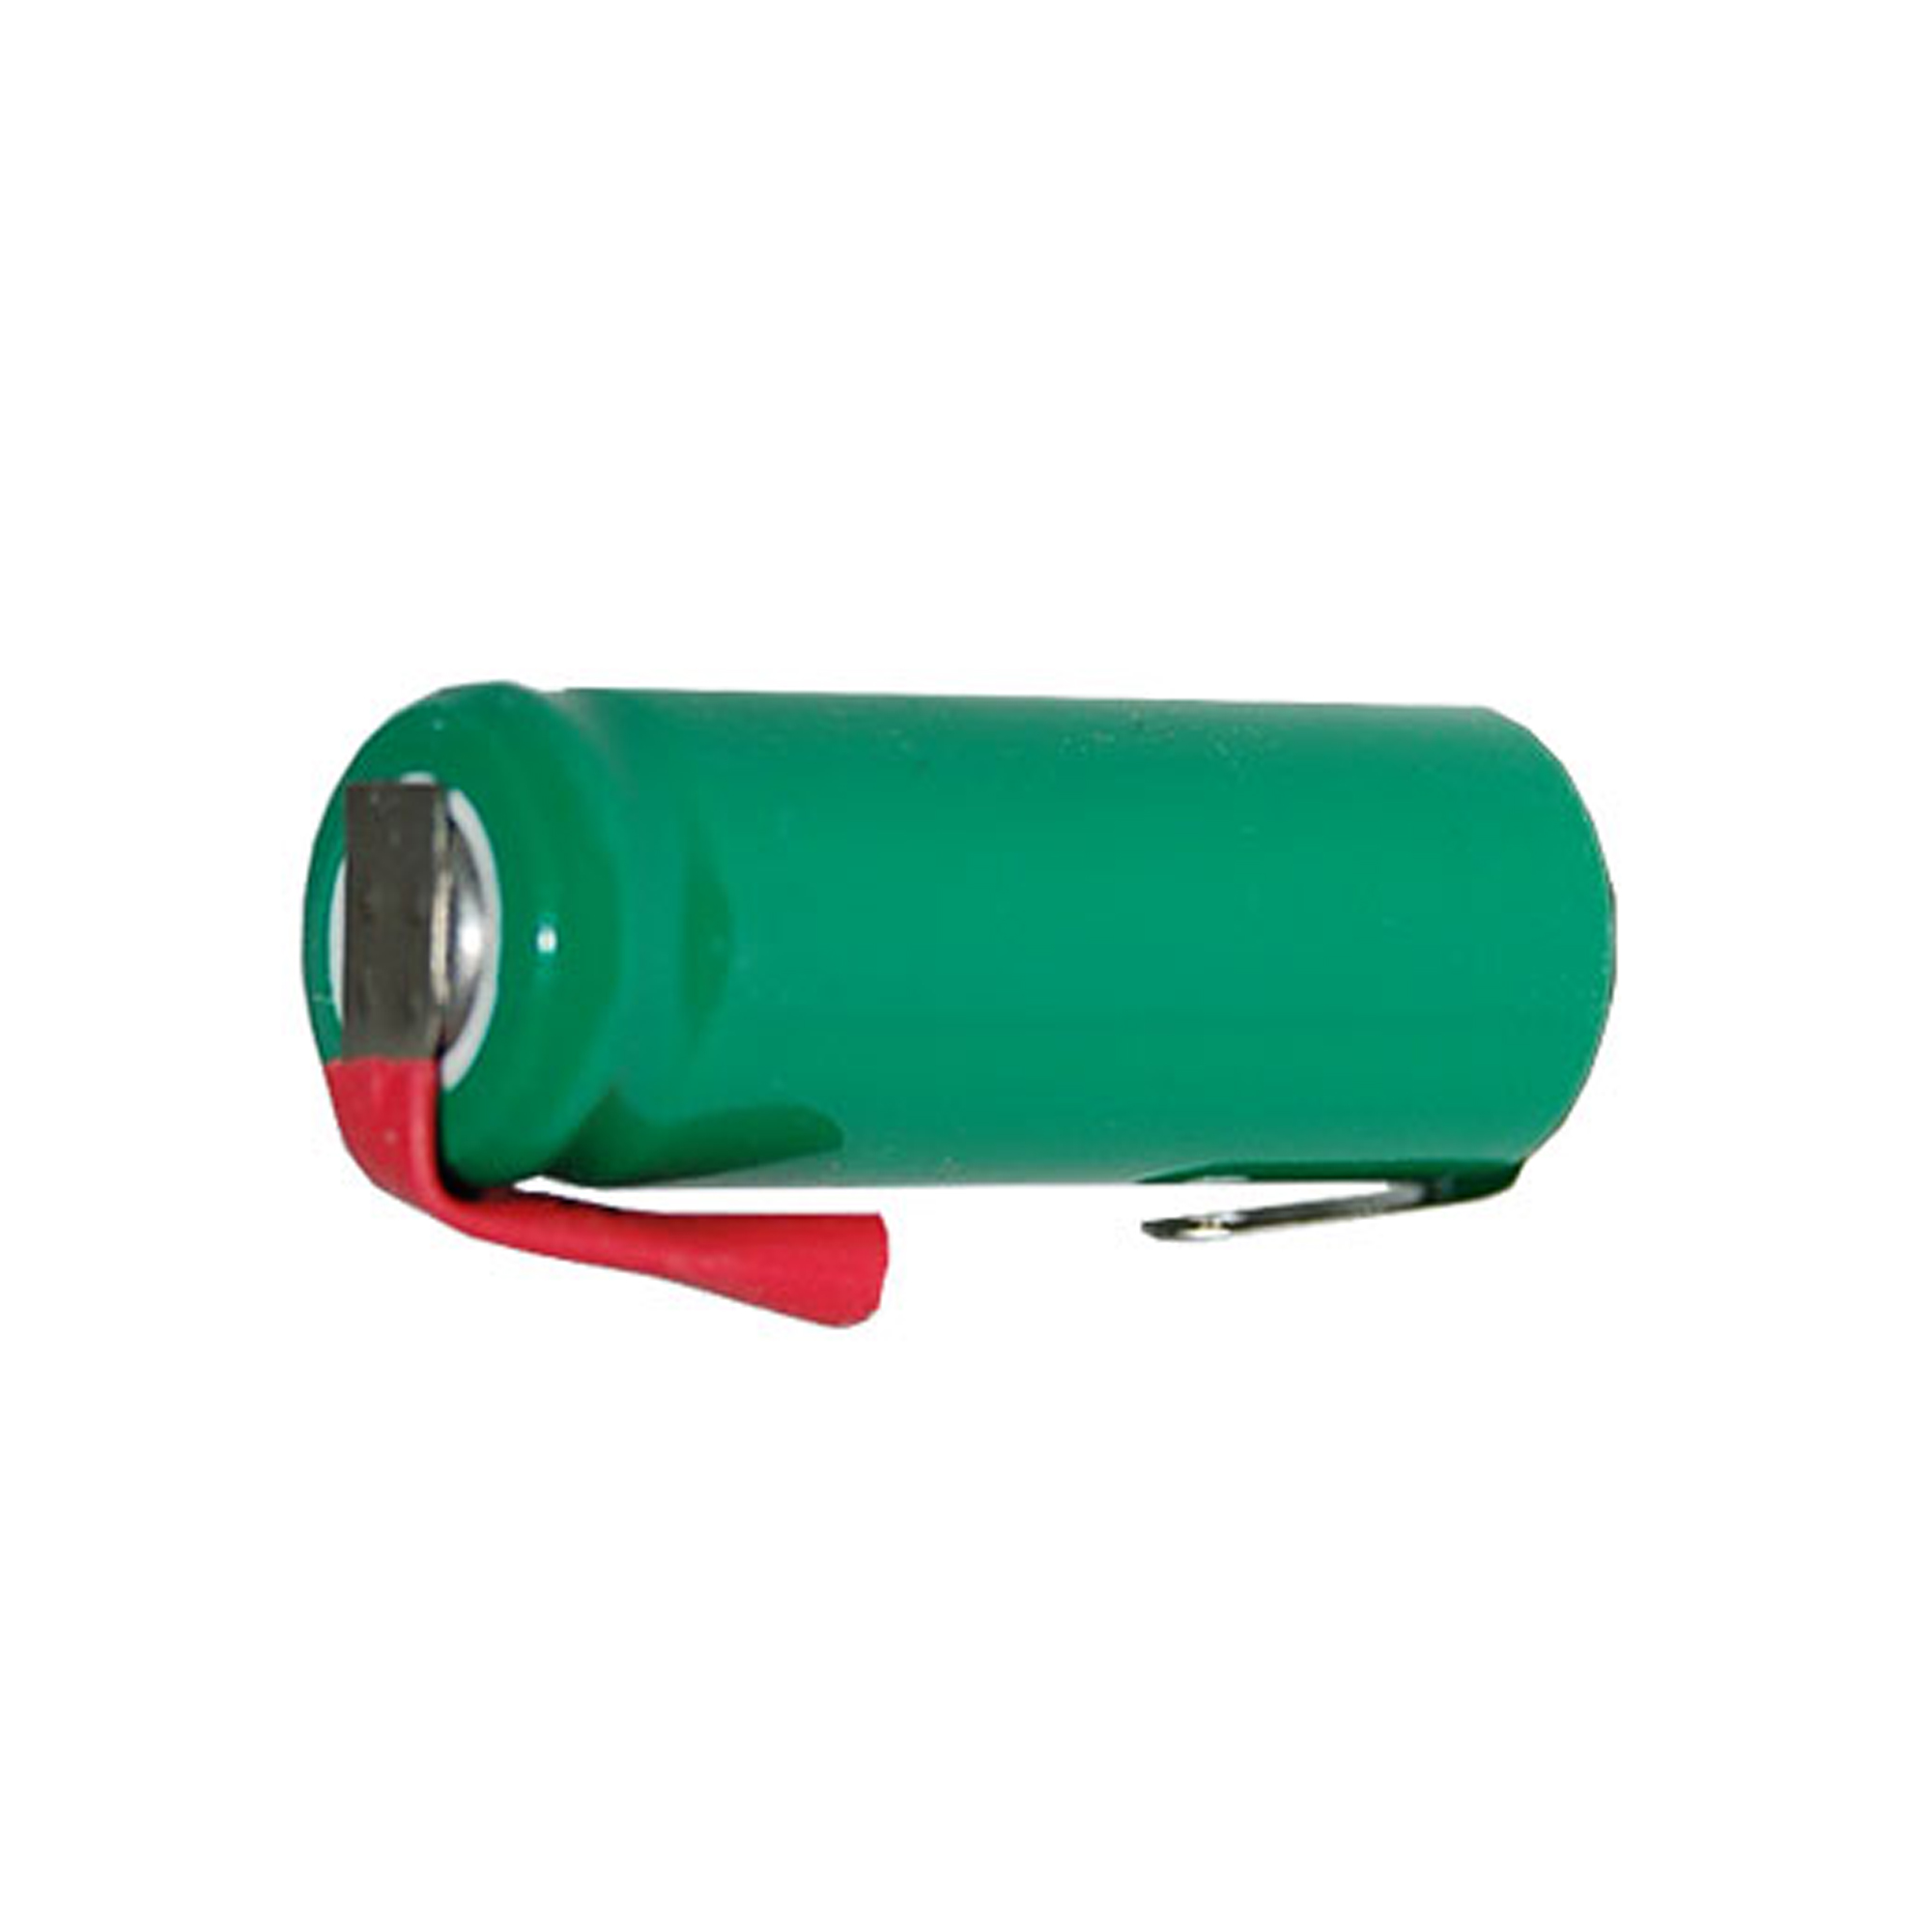 50 x 2/3 AAA NiMH Batteries with Tabs (320 mAh) - image 1 de 1